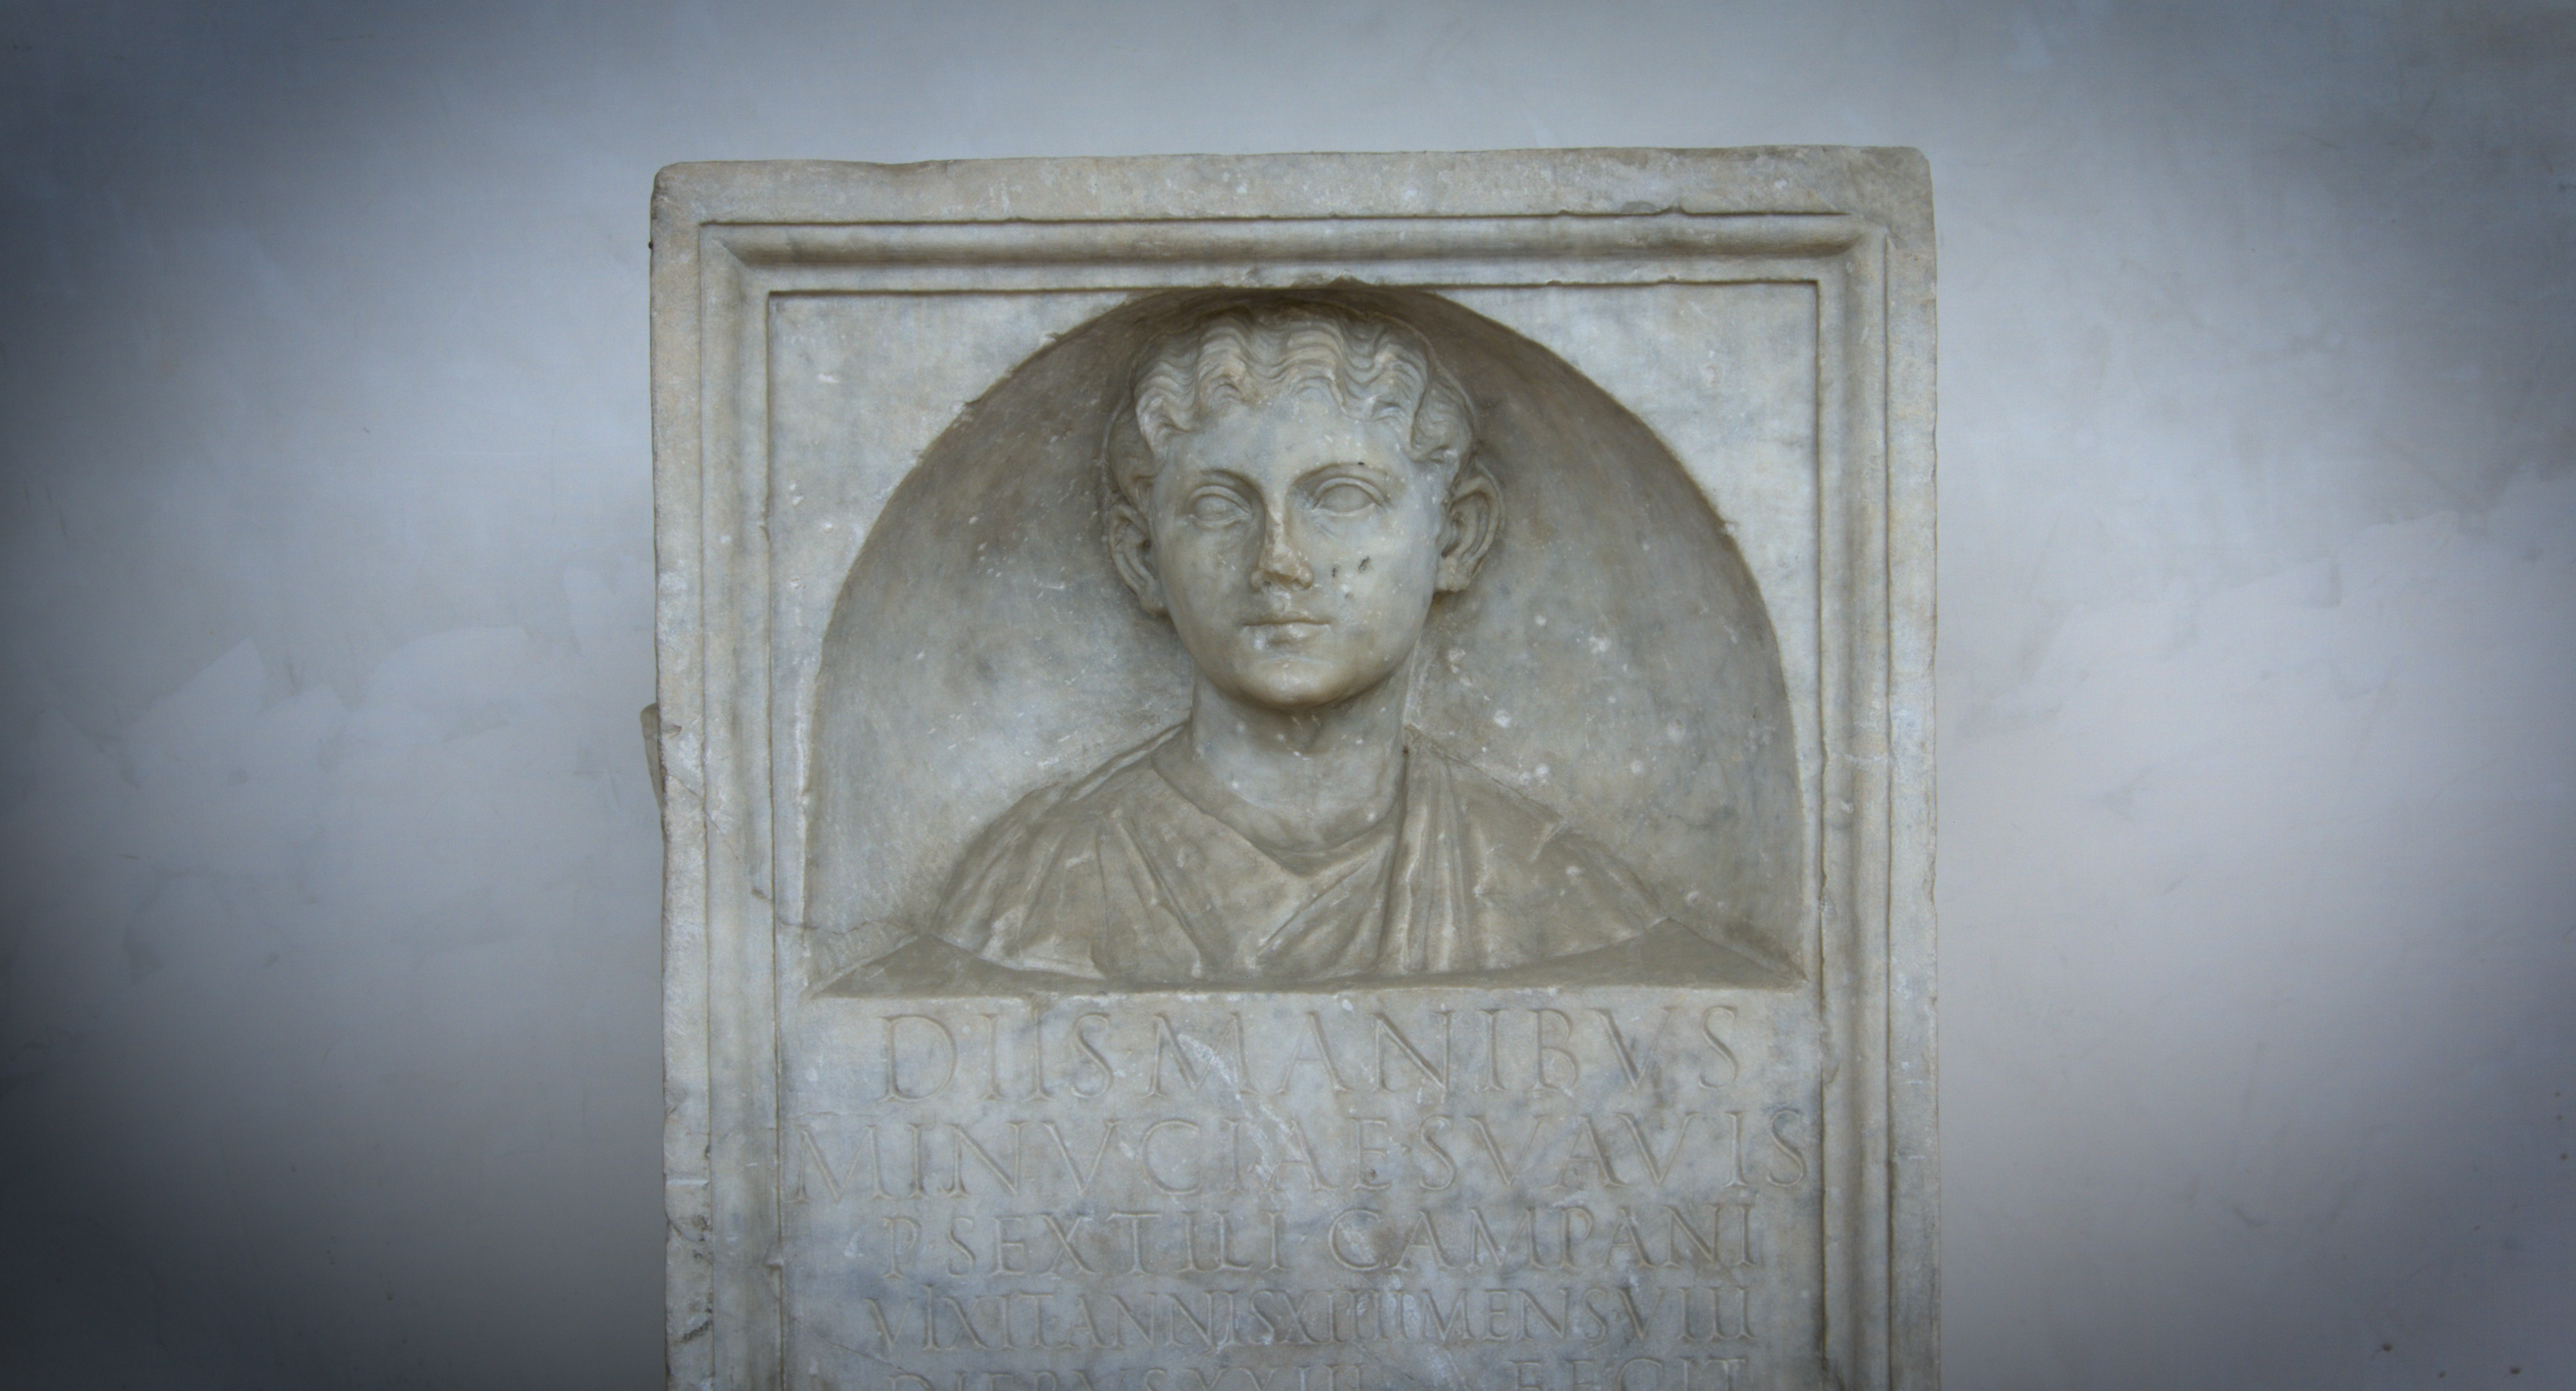 Relief of a woman's head and shoulders above an inscription